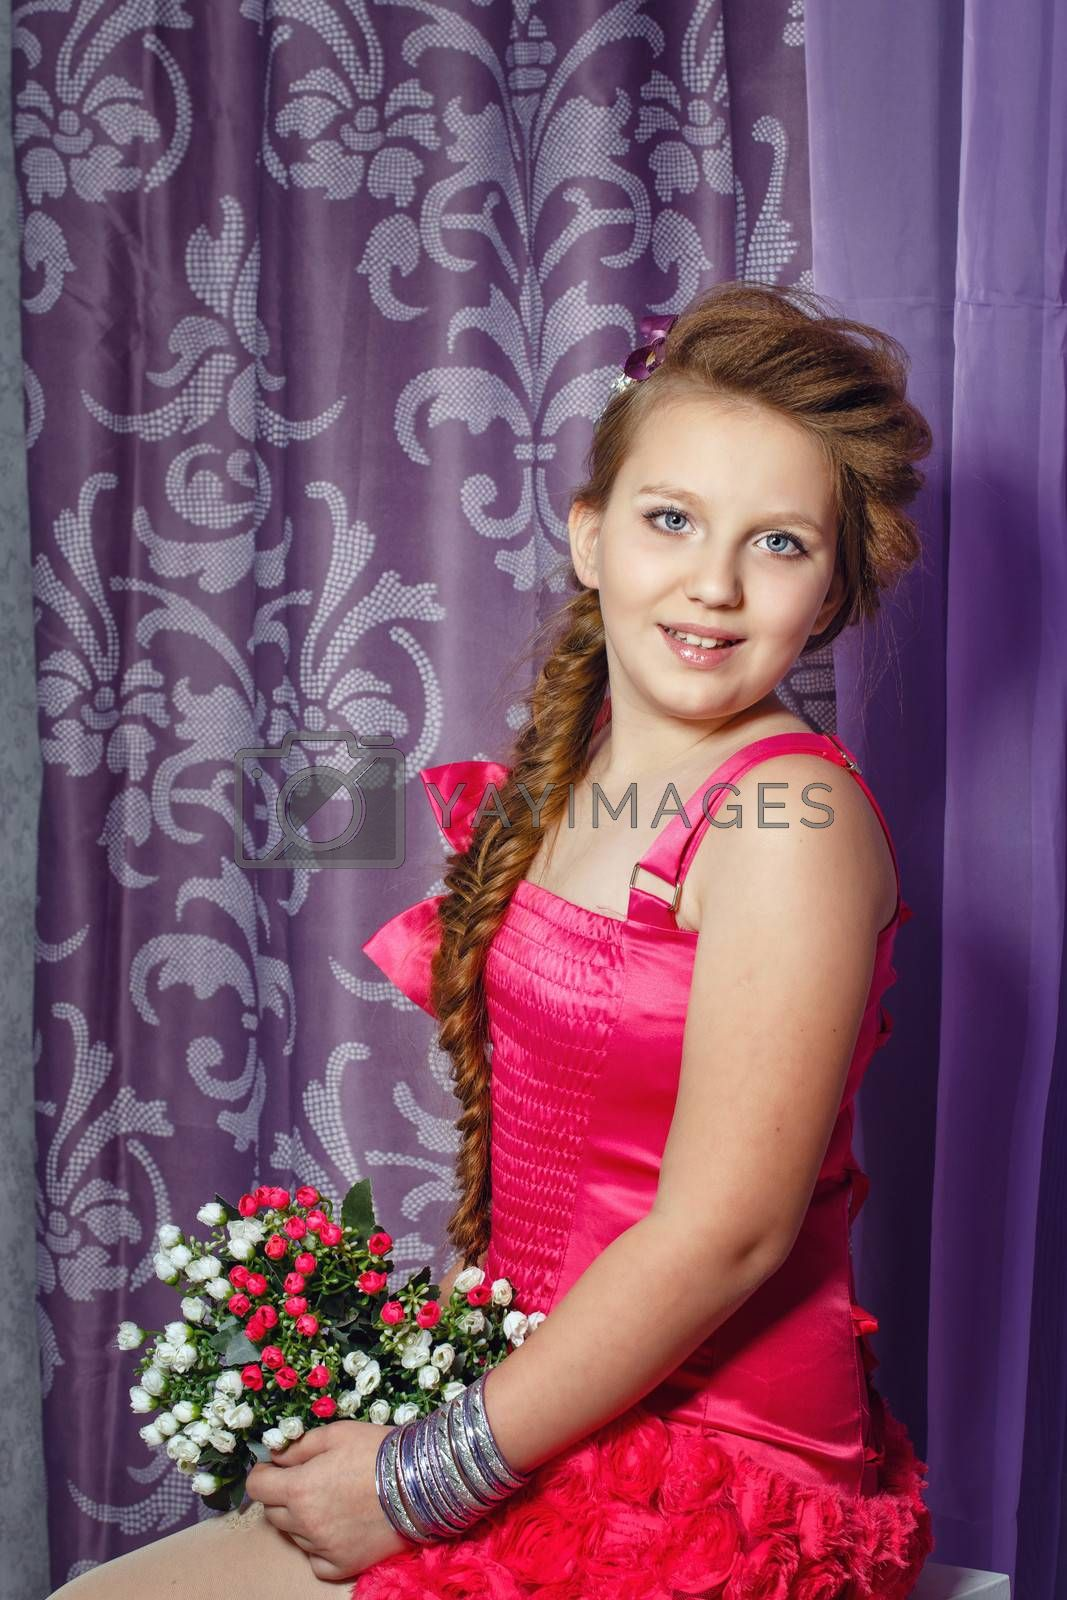 Beautiful little girl in a pink dress with a bouquet of flowers posing in the interior